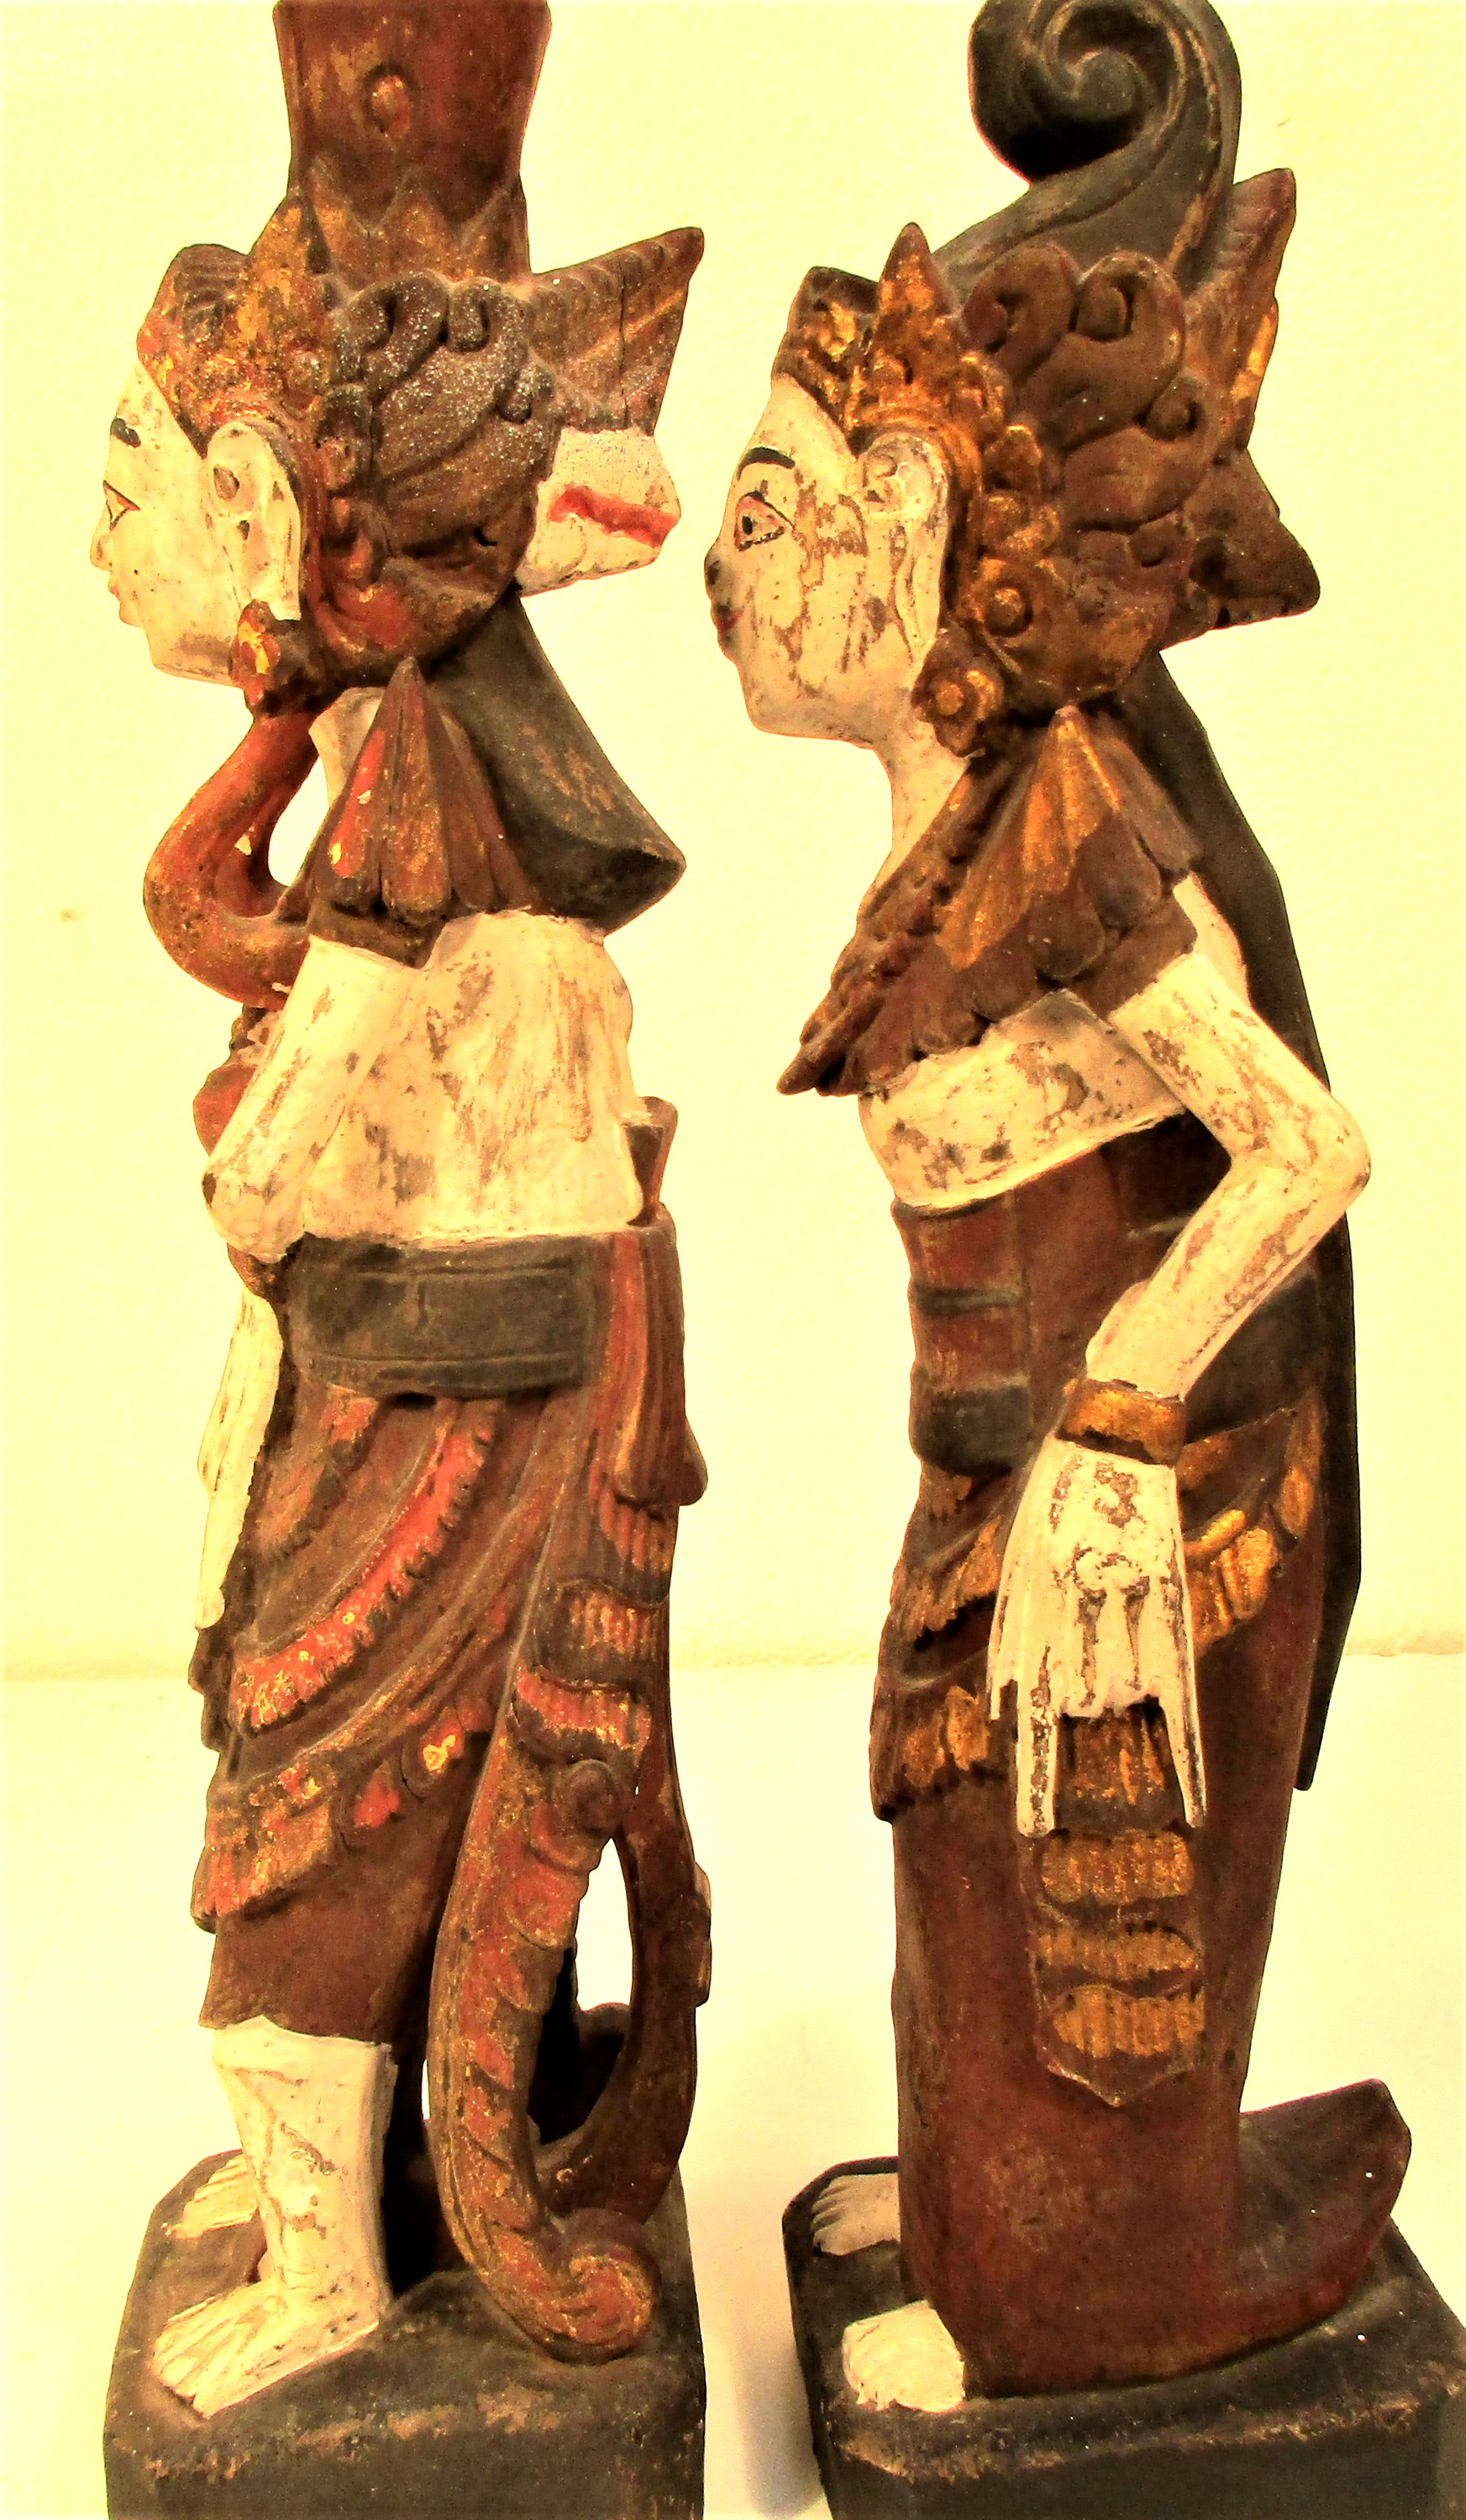 Wedding couple statues from east Bali. They are carved wearing tradition costumes and head dress, - Image 2 of 4